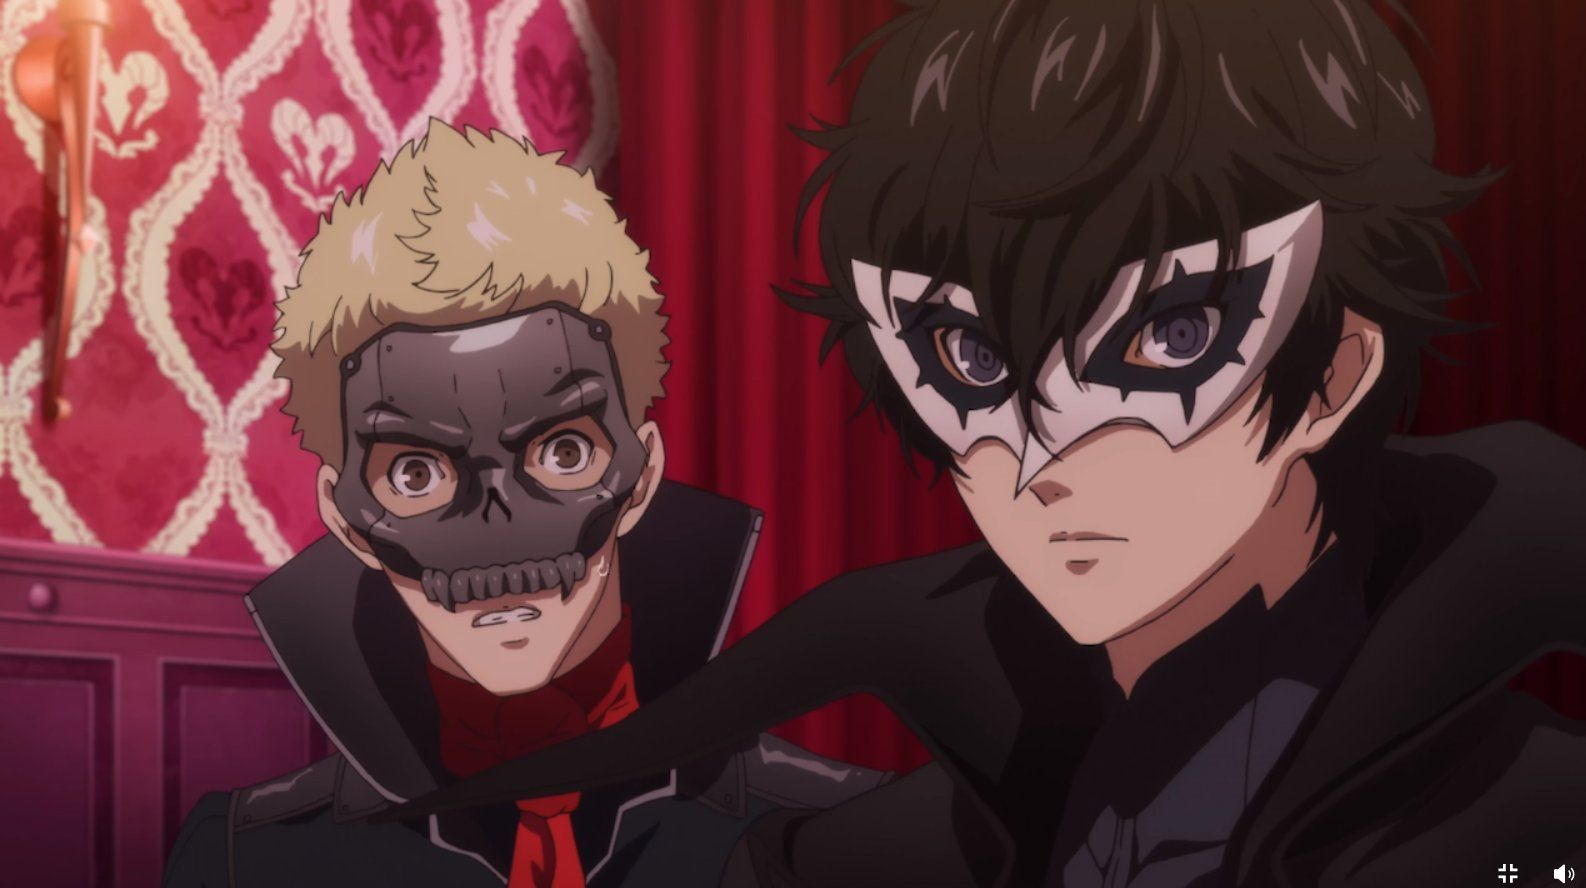 Pin by YoungLeslo on Persona 5 Persona 5, Persona, Anime